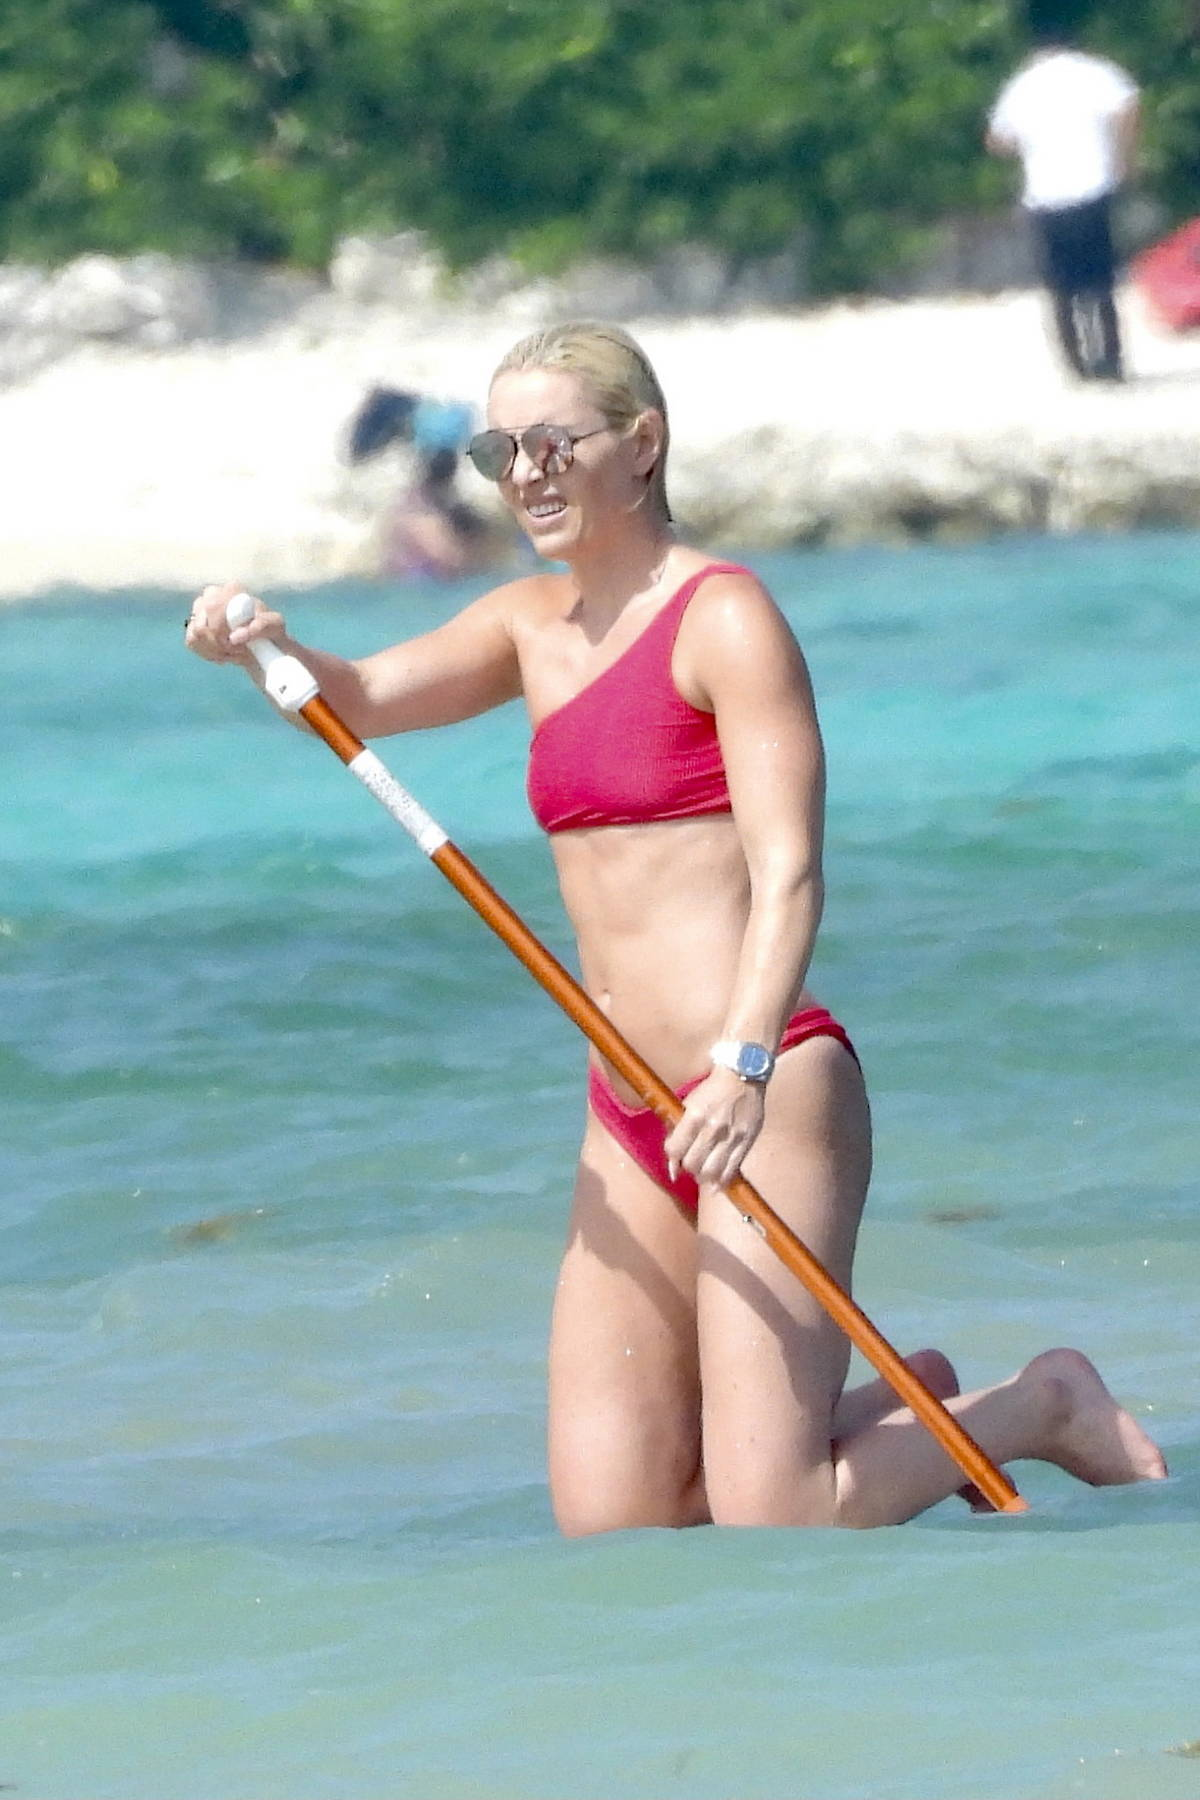 Lindsey Vonn shows off her athletic figure in a red bikini as she enjoys some paddle-boarding while on vacation in Tulum, Mexico